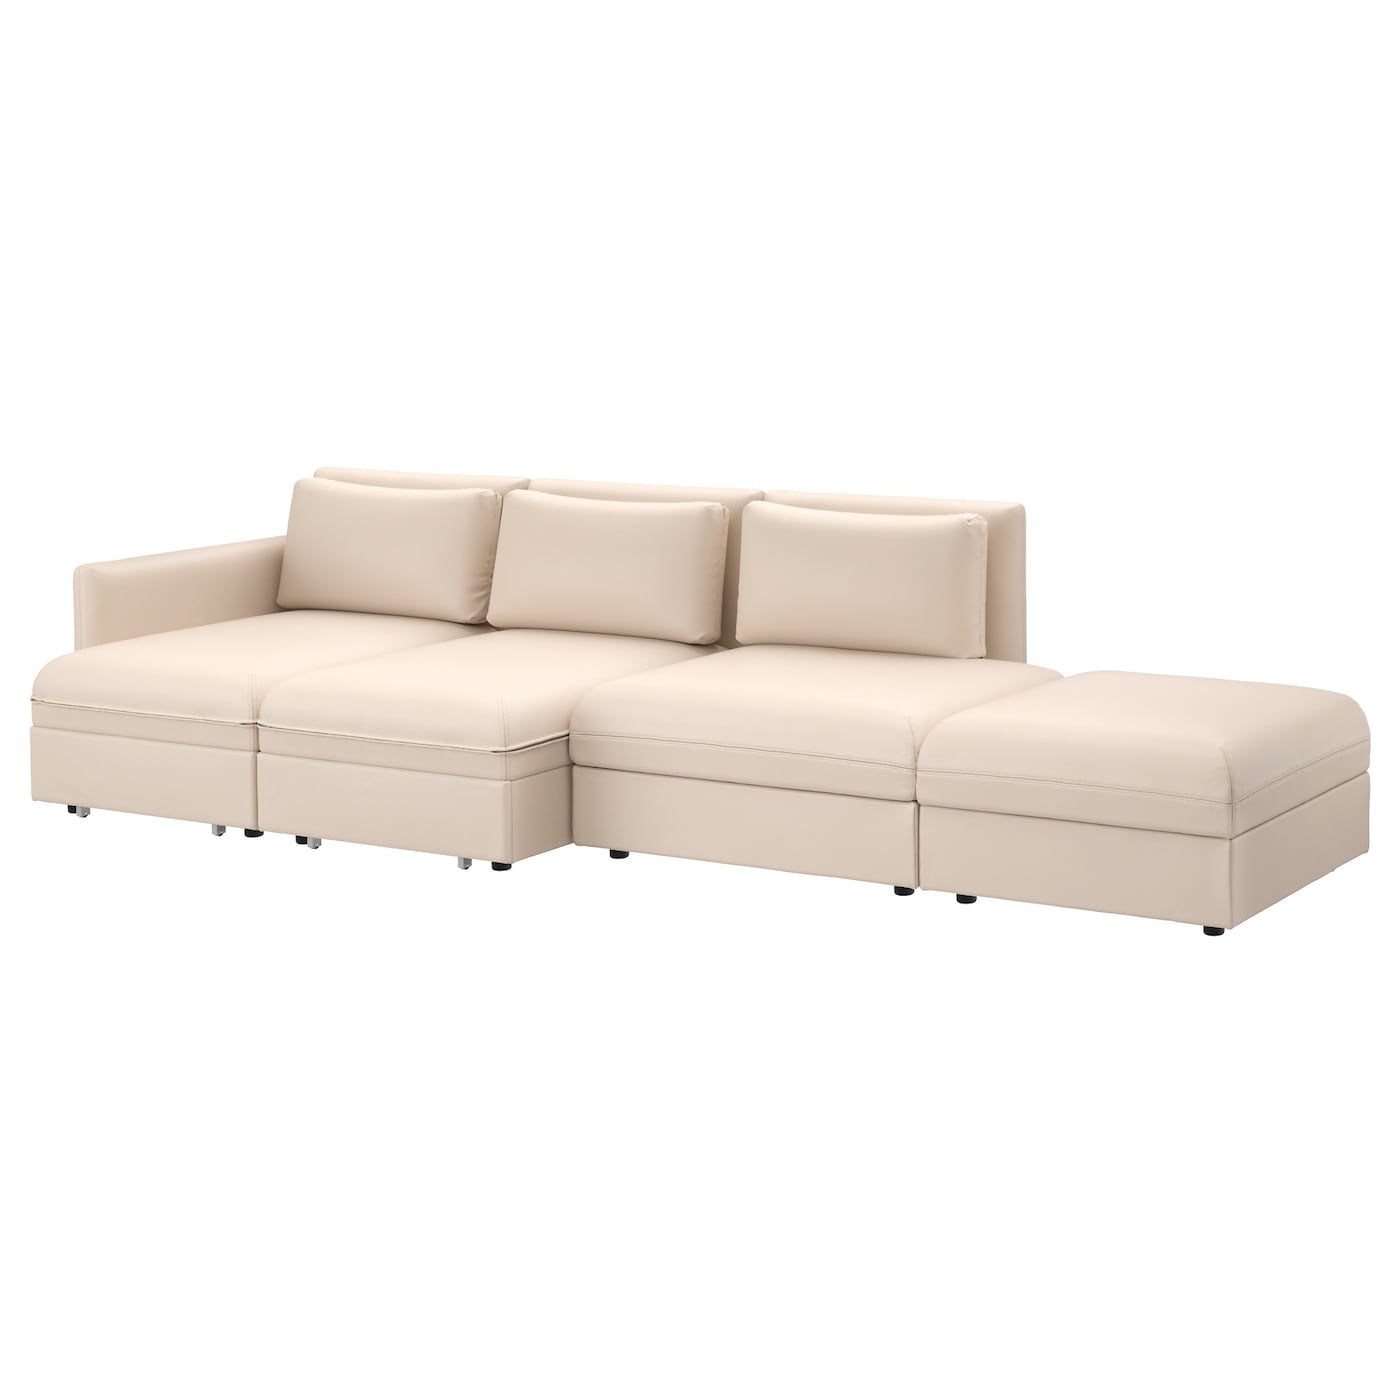 vallentuna 4 seat sofa with bed murum beige ikea. Black Bedroom Furniture Sets. Home Design Ideas